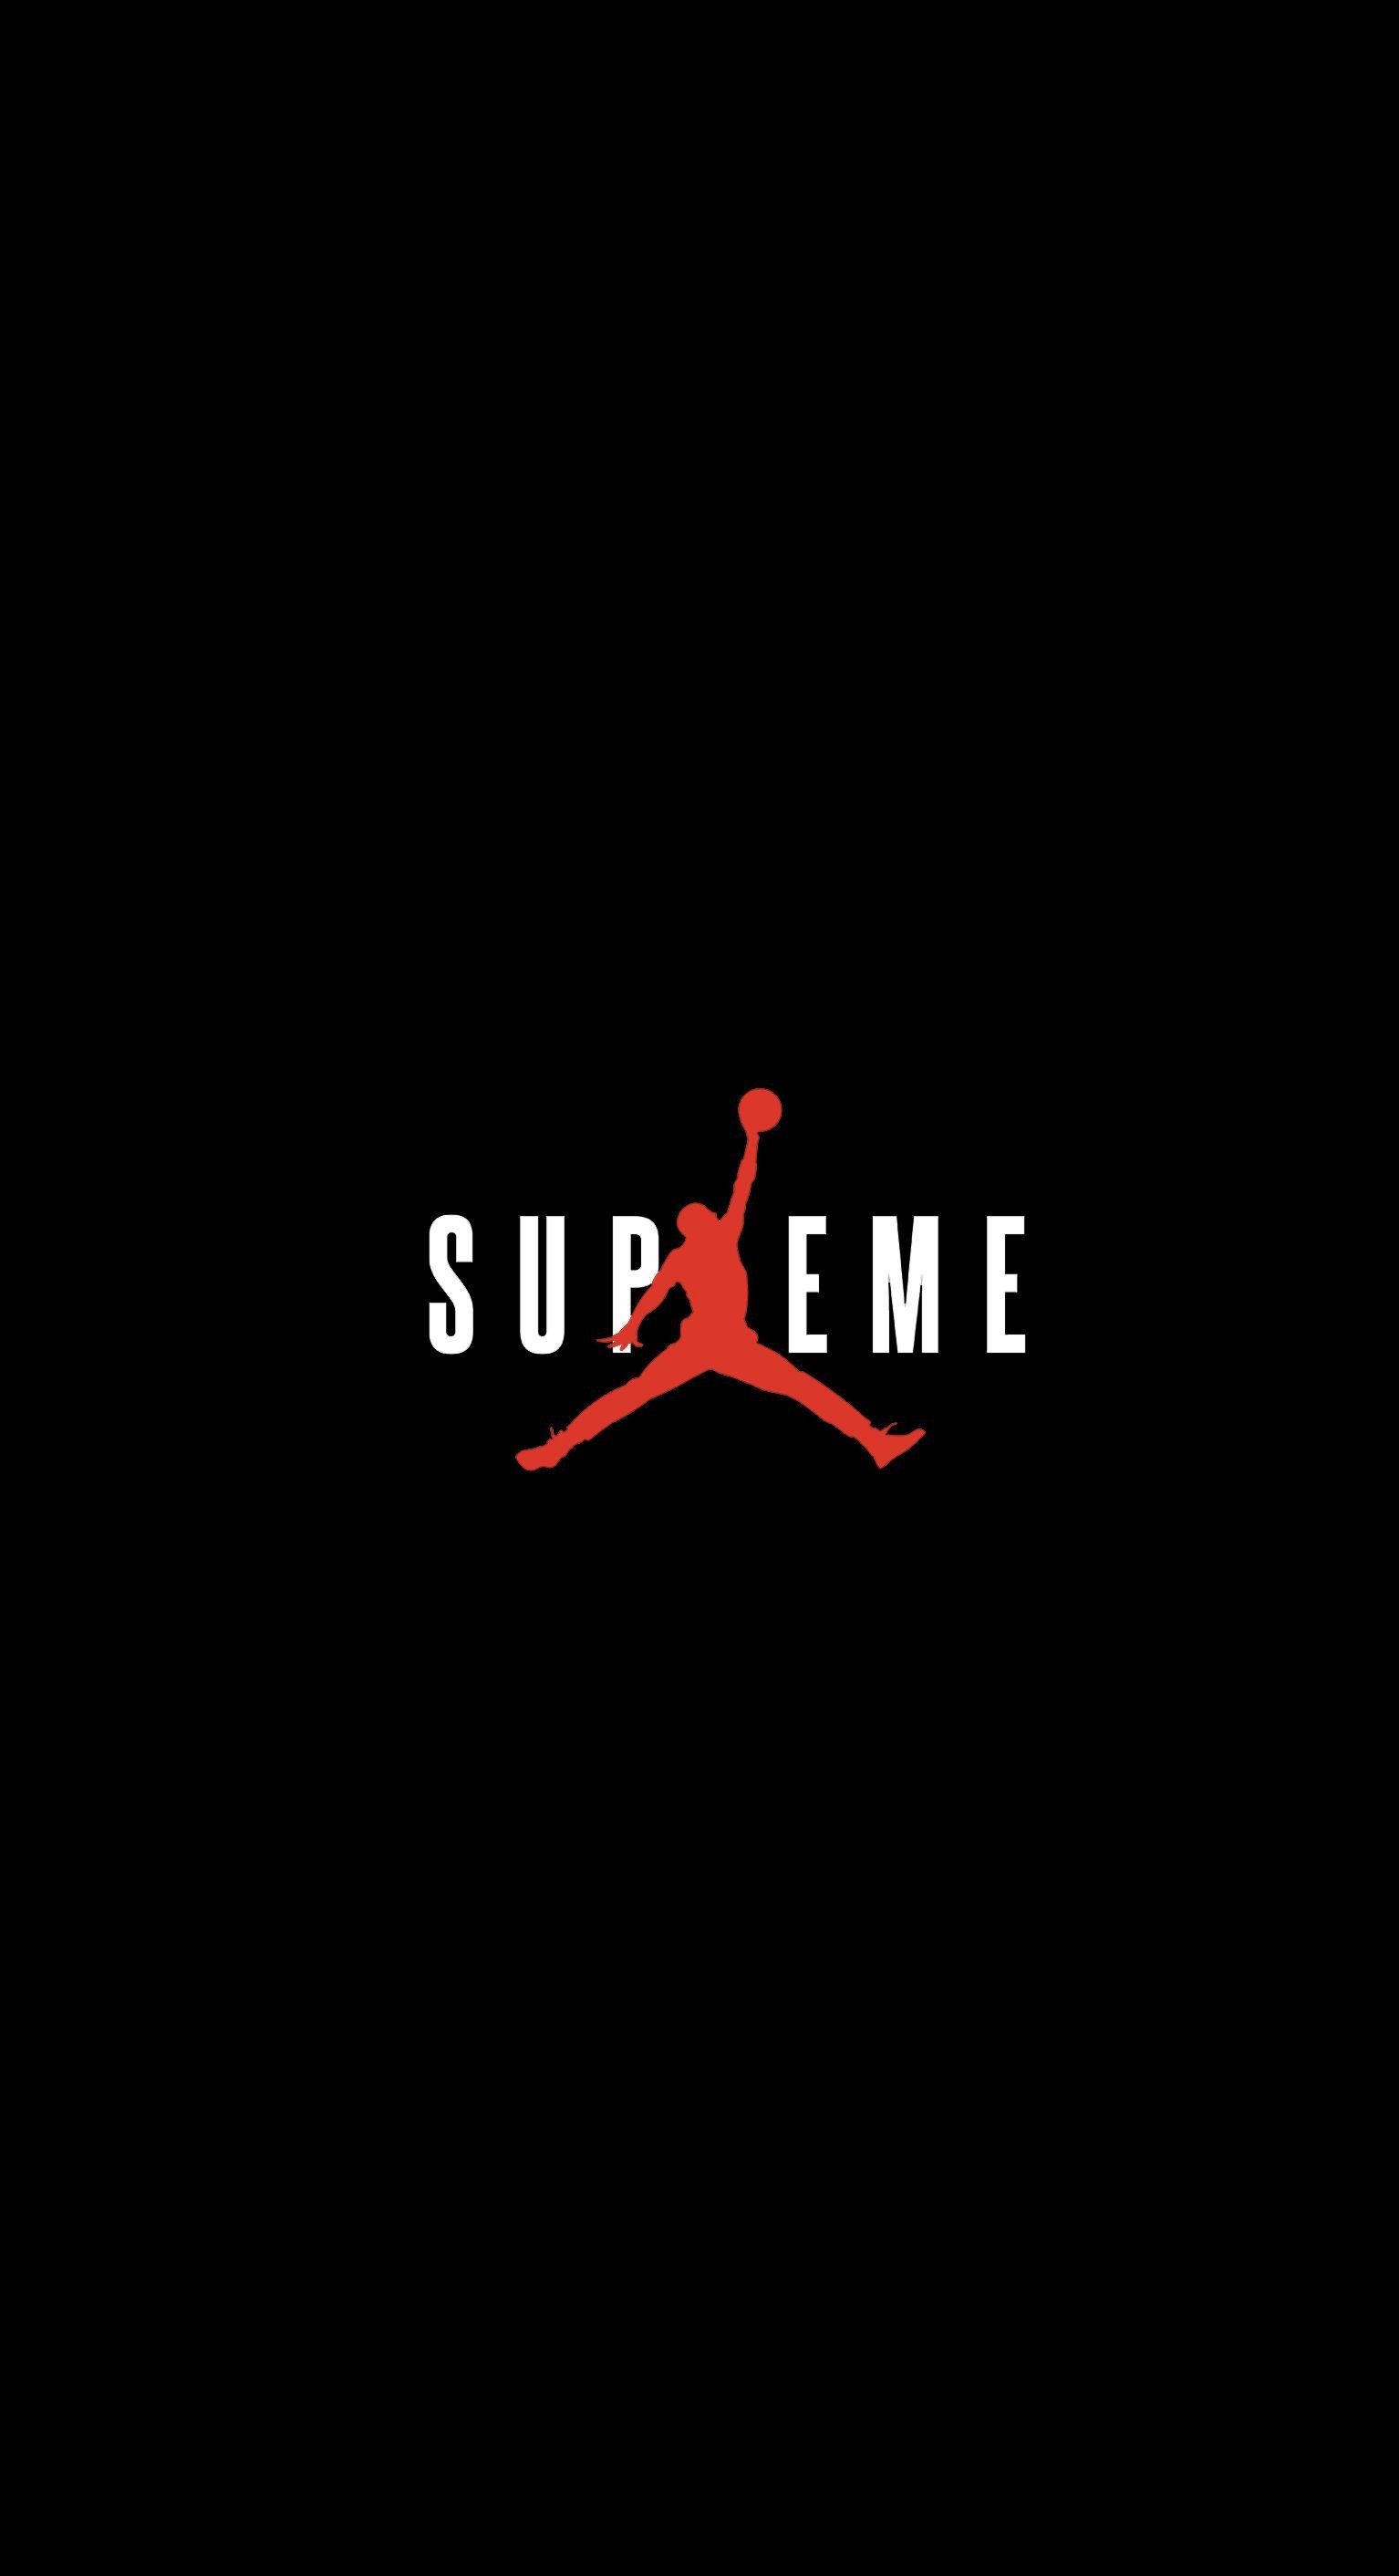 1534x2824 Supreme x Jordan Wallpaper : streetwear - Streetwear Wallpapers - Wallpaper  Zone